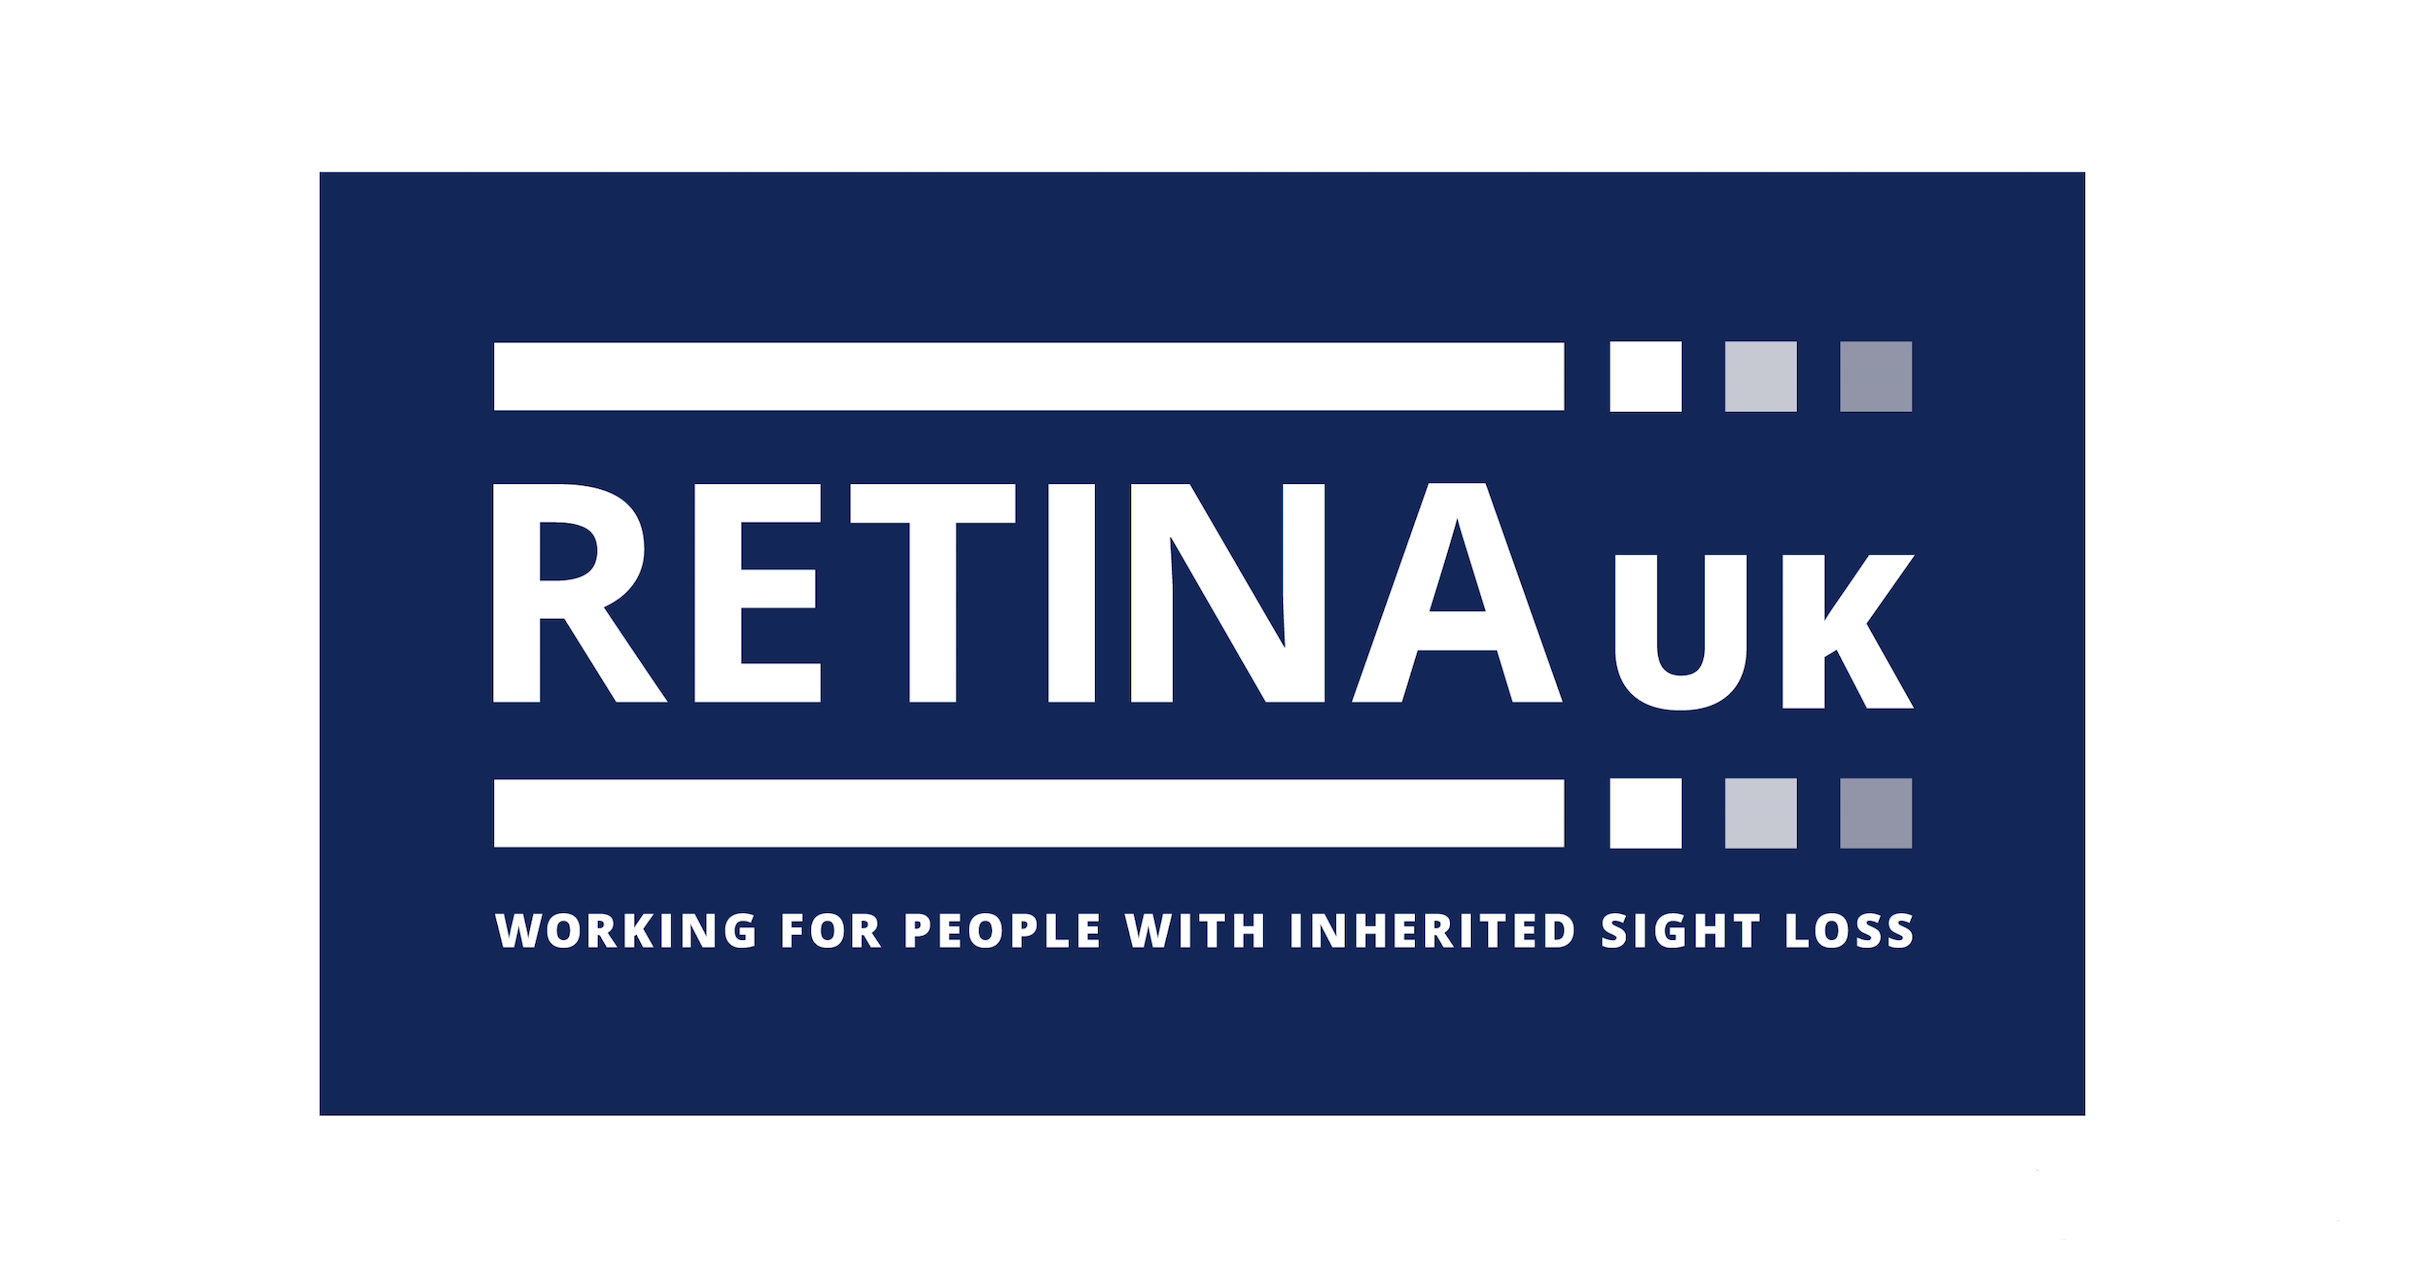 Retina UK logo with 'working for people with inherited sight loss' written below